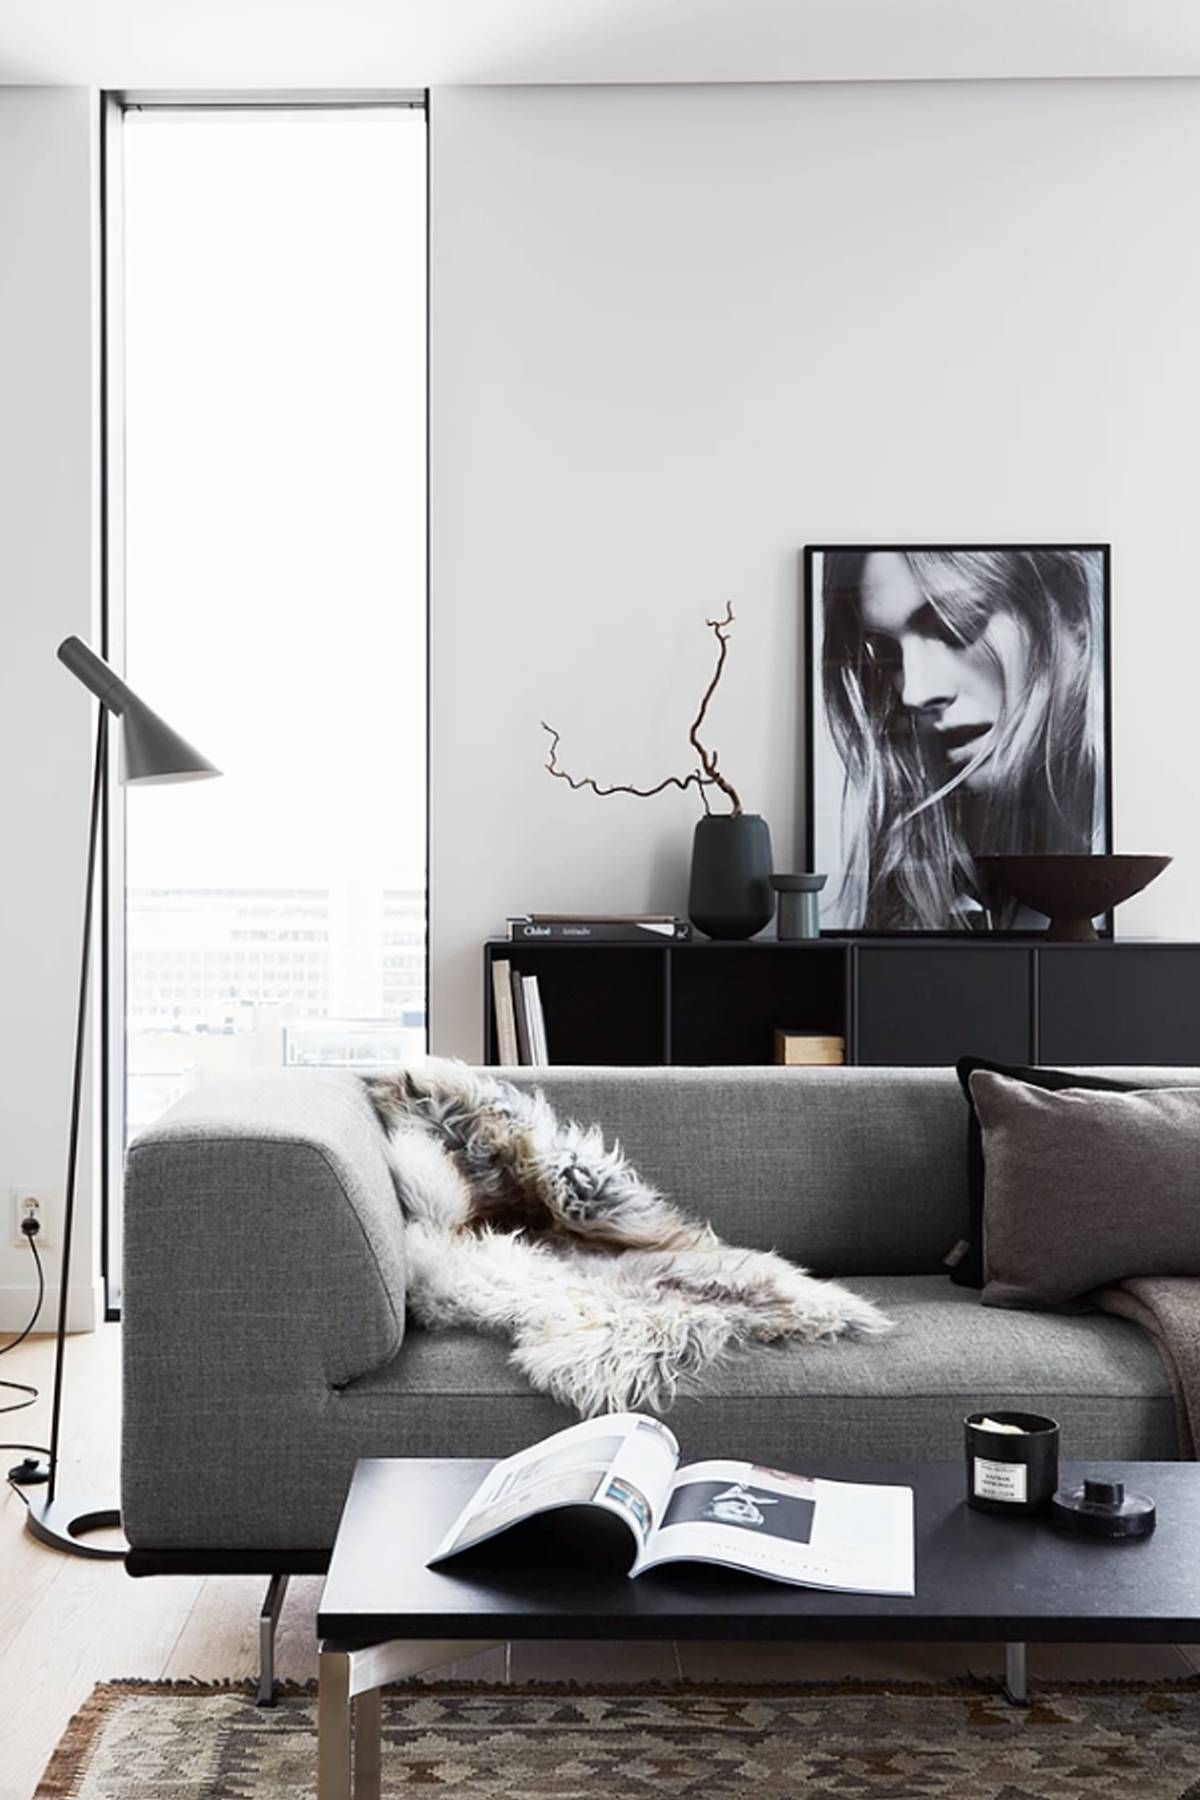 This Is How To Do Scandinavian Interior Design - Mydomaine